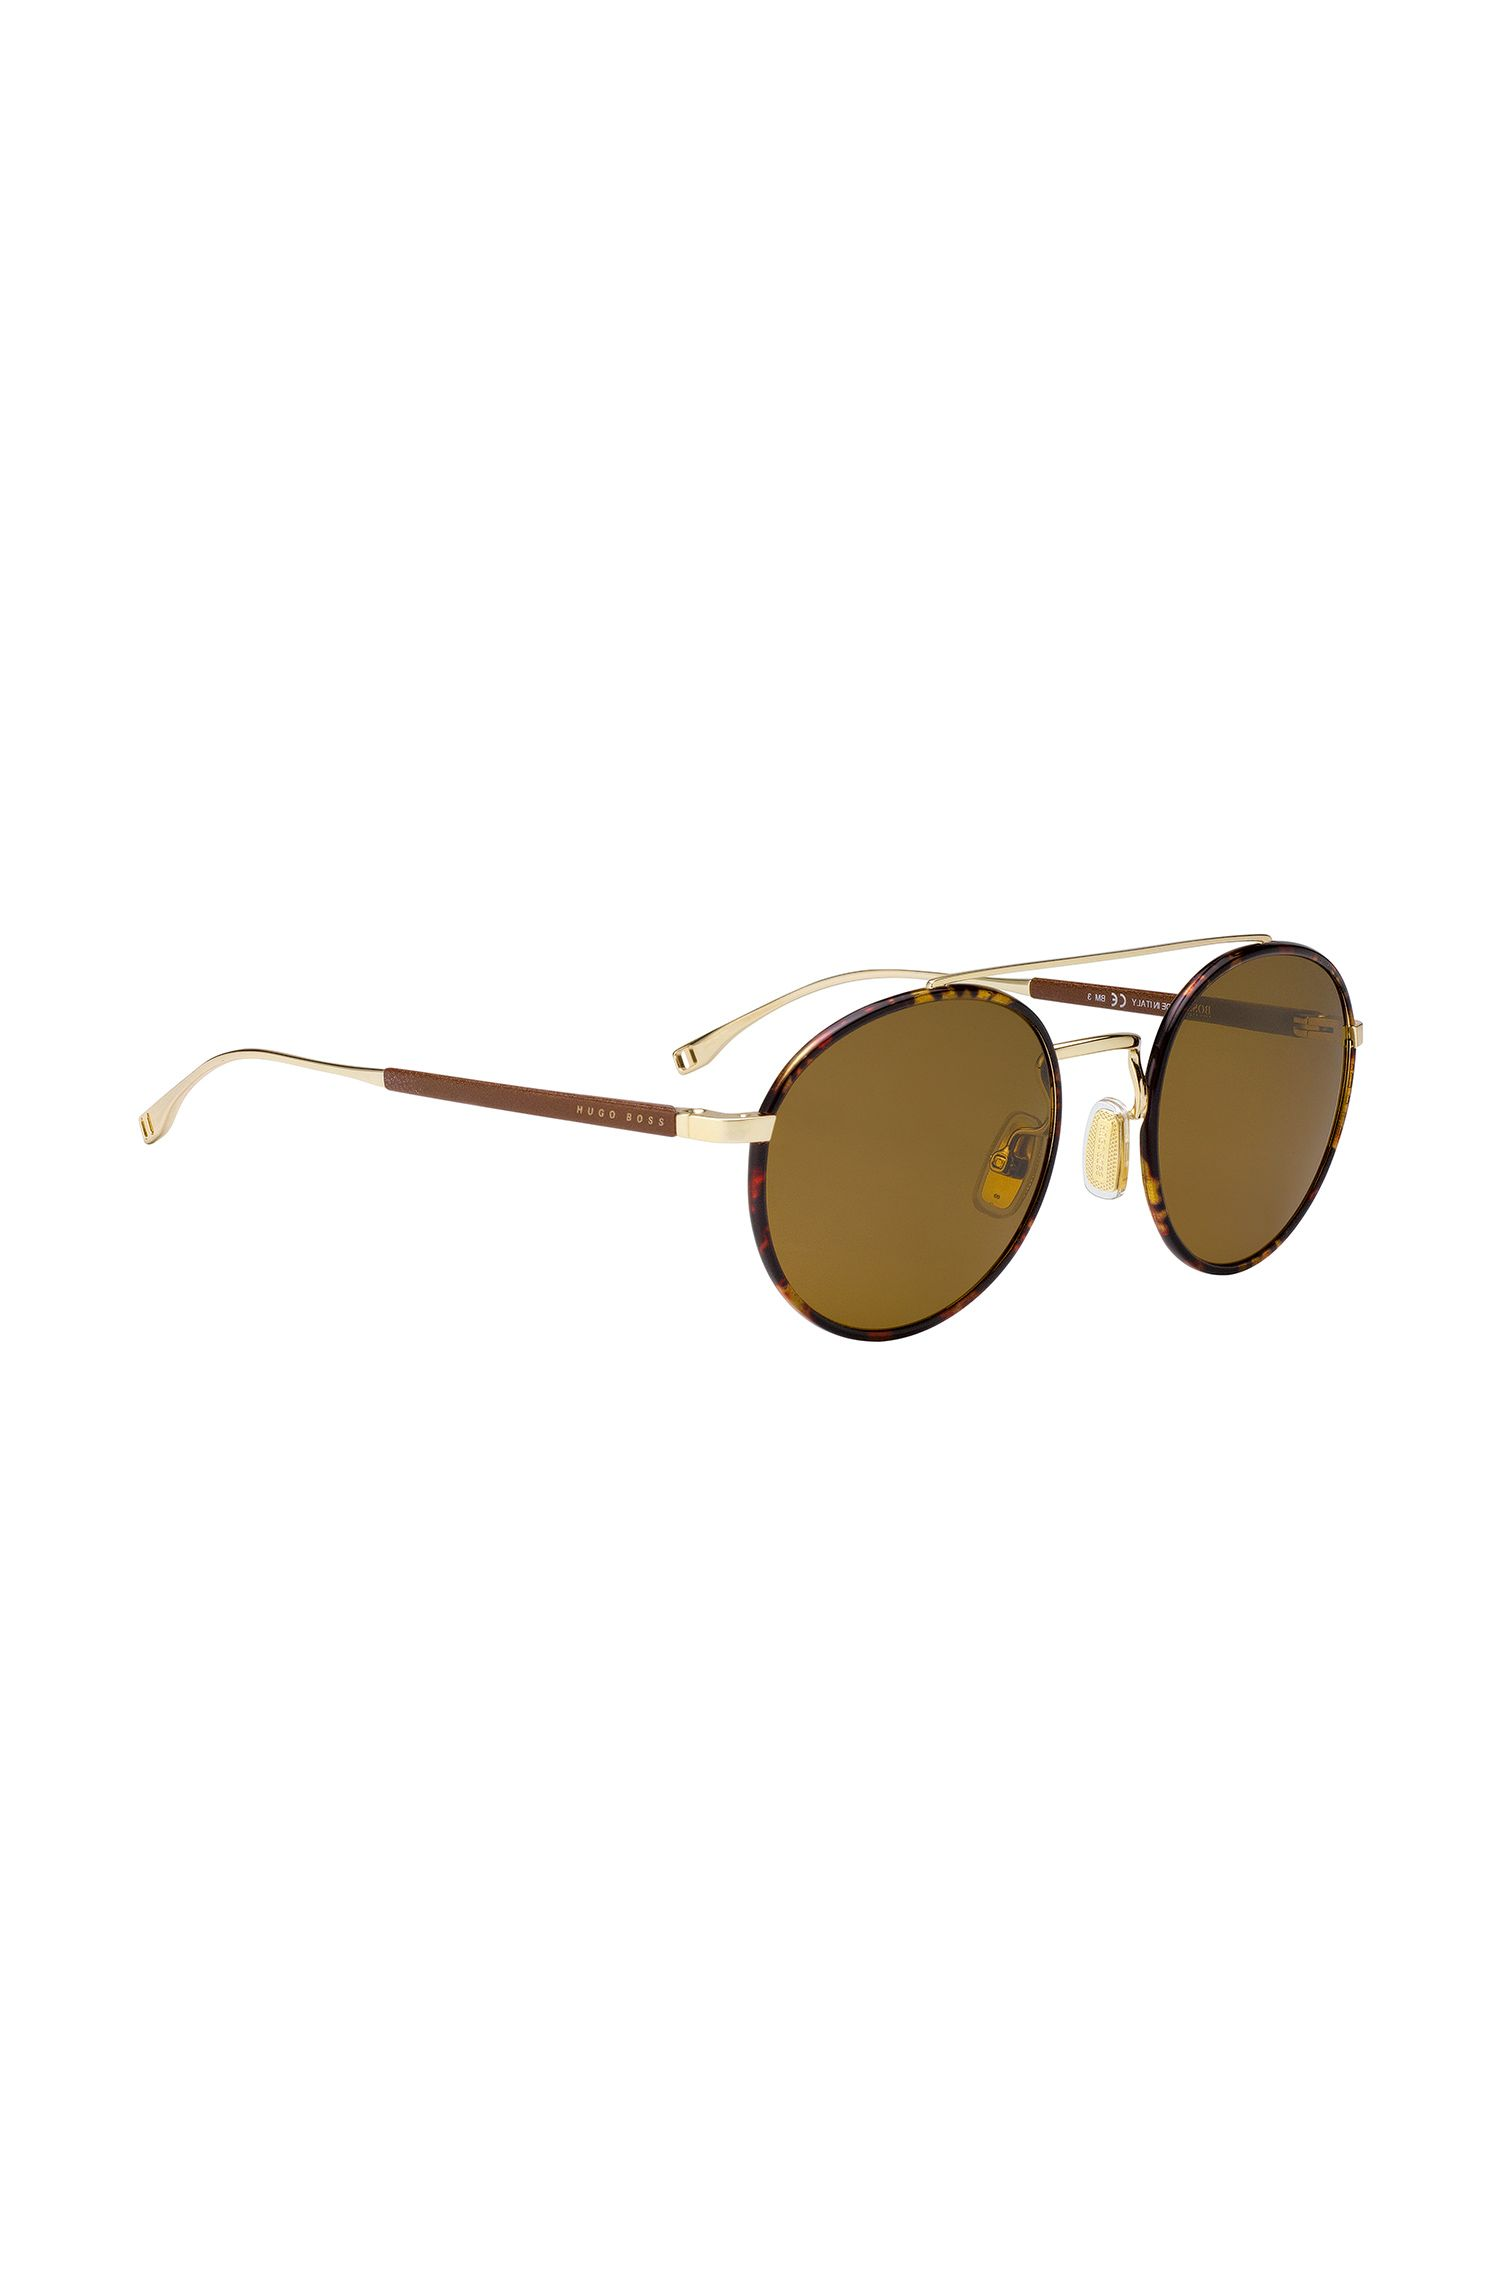 Panto sunglasses with leather temples